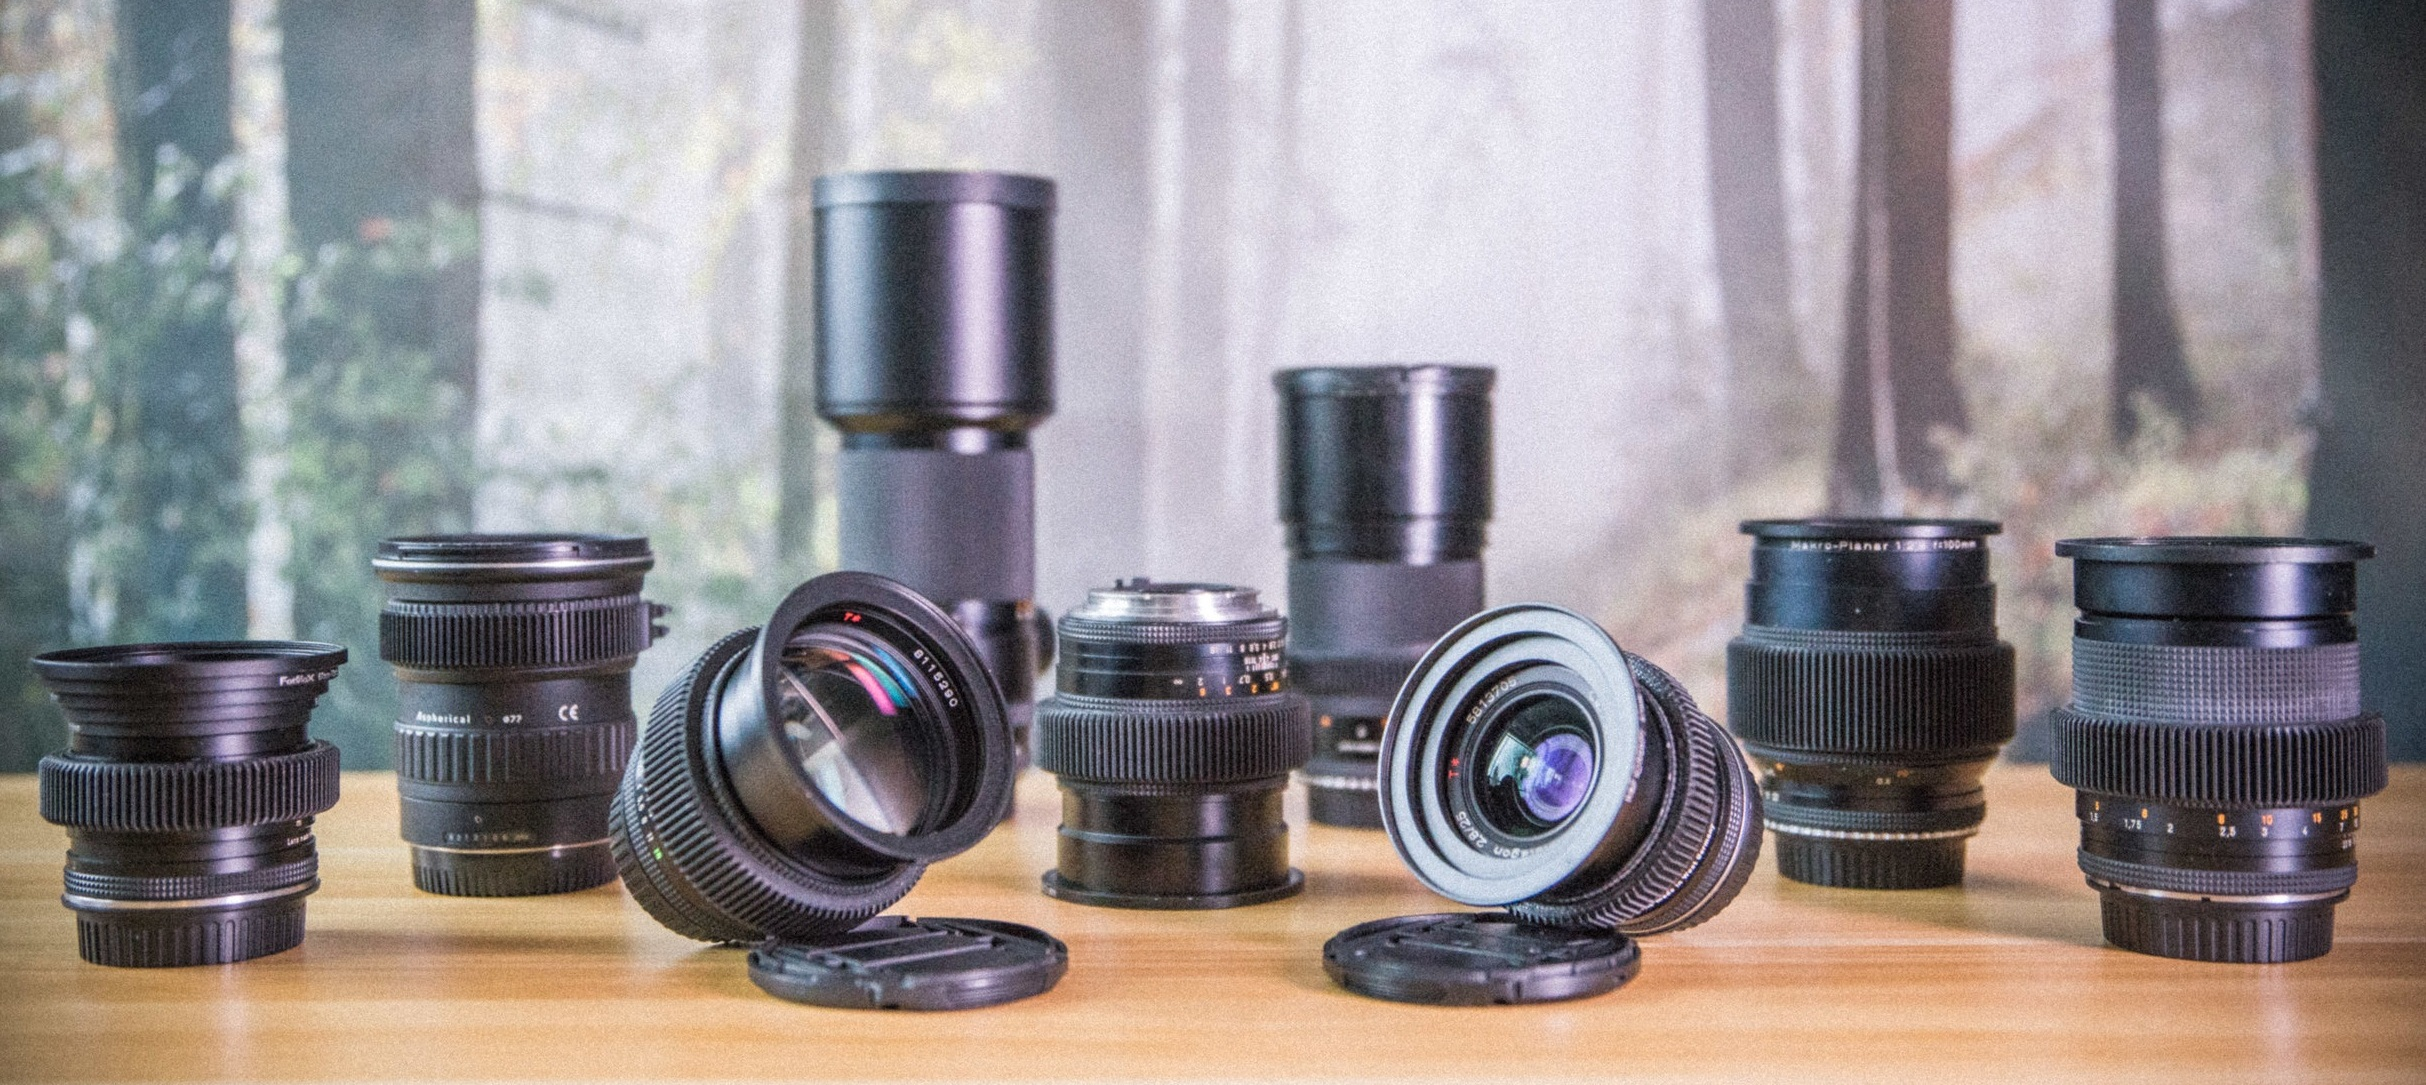 - ZEISS LENSES